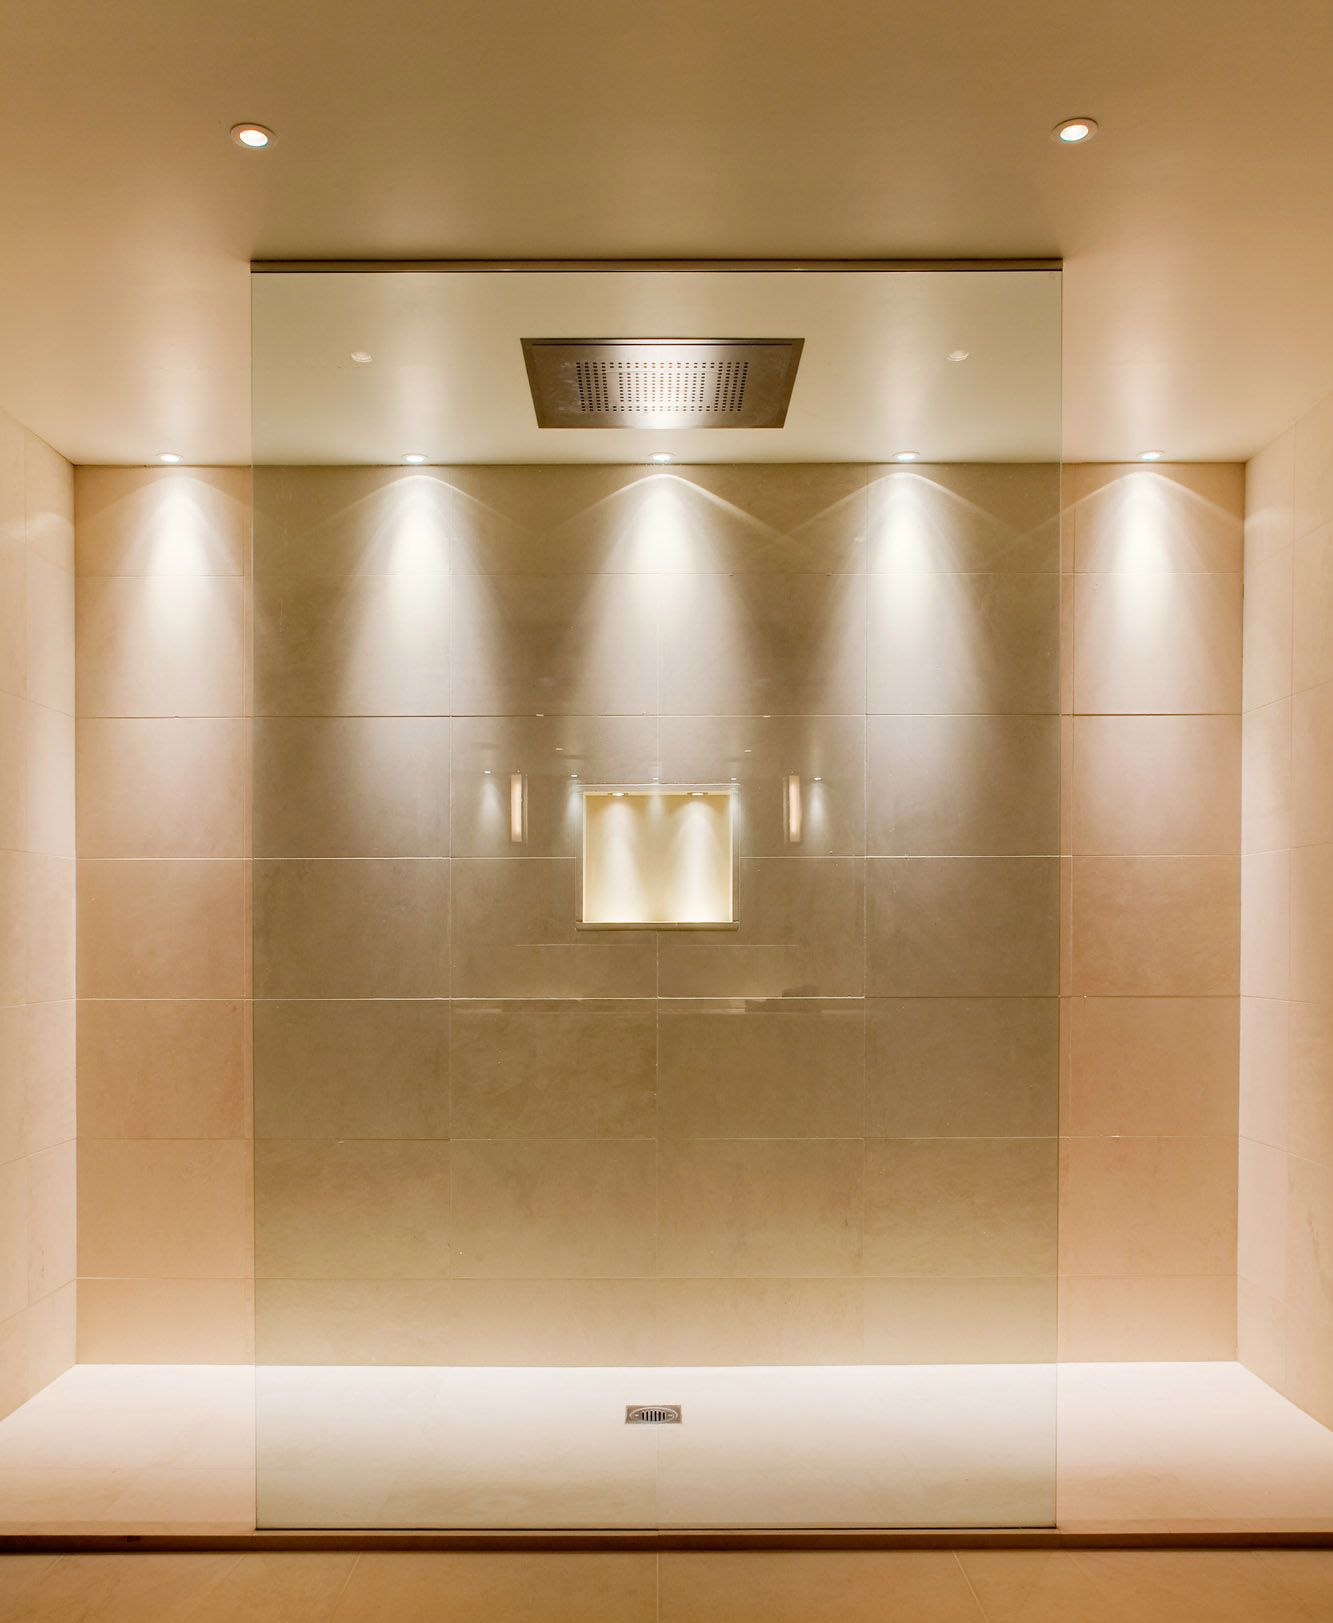 Bathroom Light Fixtures (3) | Our new bathroom | Pinterest ...